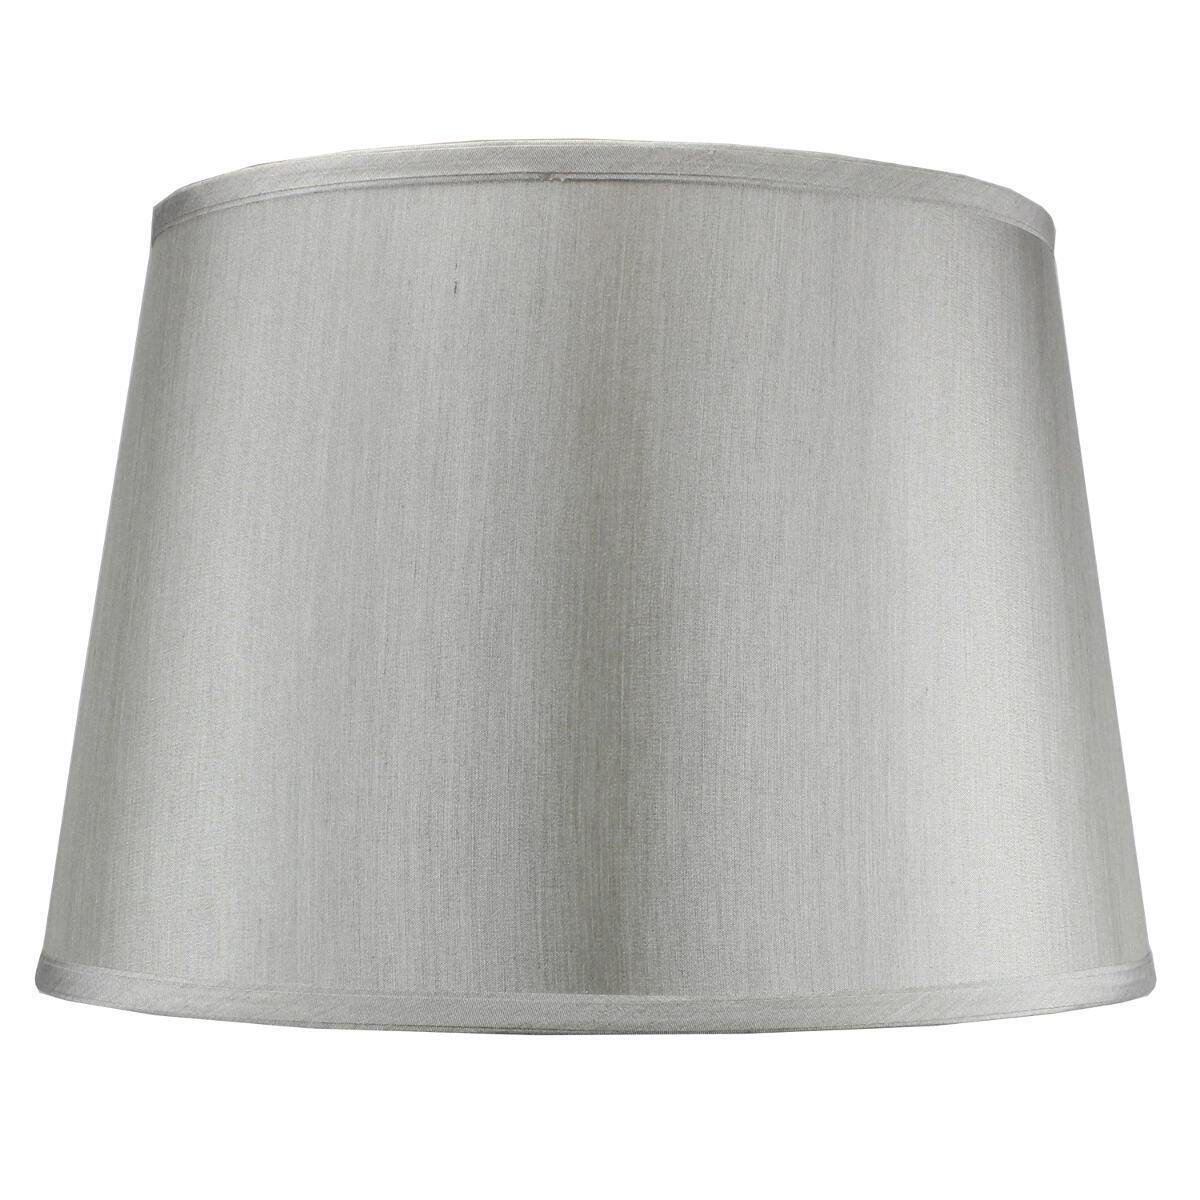 13x16x11 Bavarian Grey Floor Lampshade with Brass Spider fitter By Home Concept - Perfect for table and Desk lamps - Large, Grey